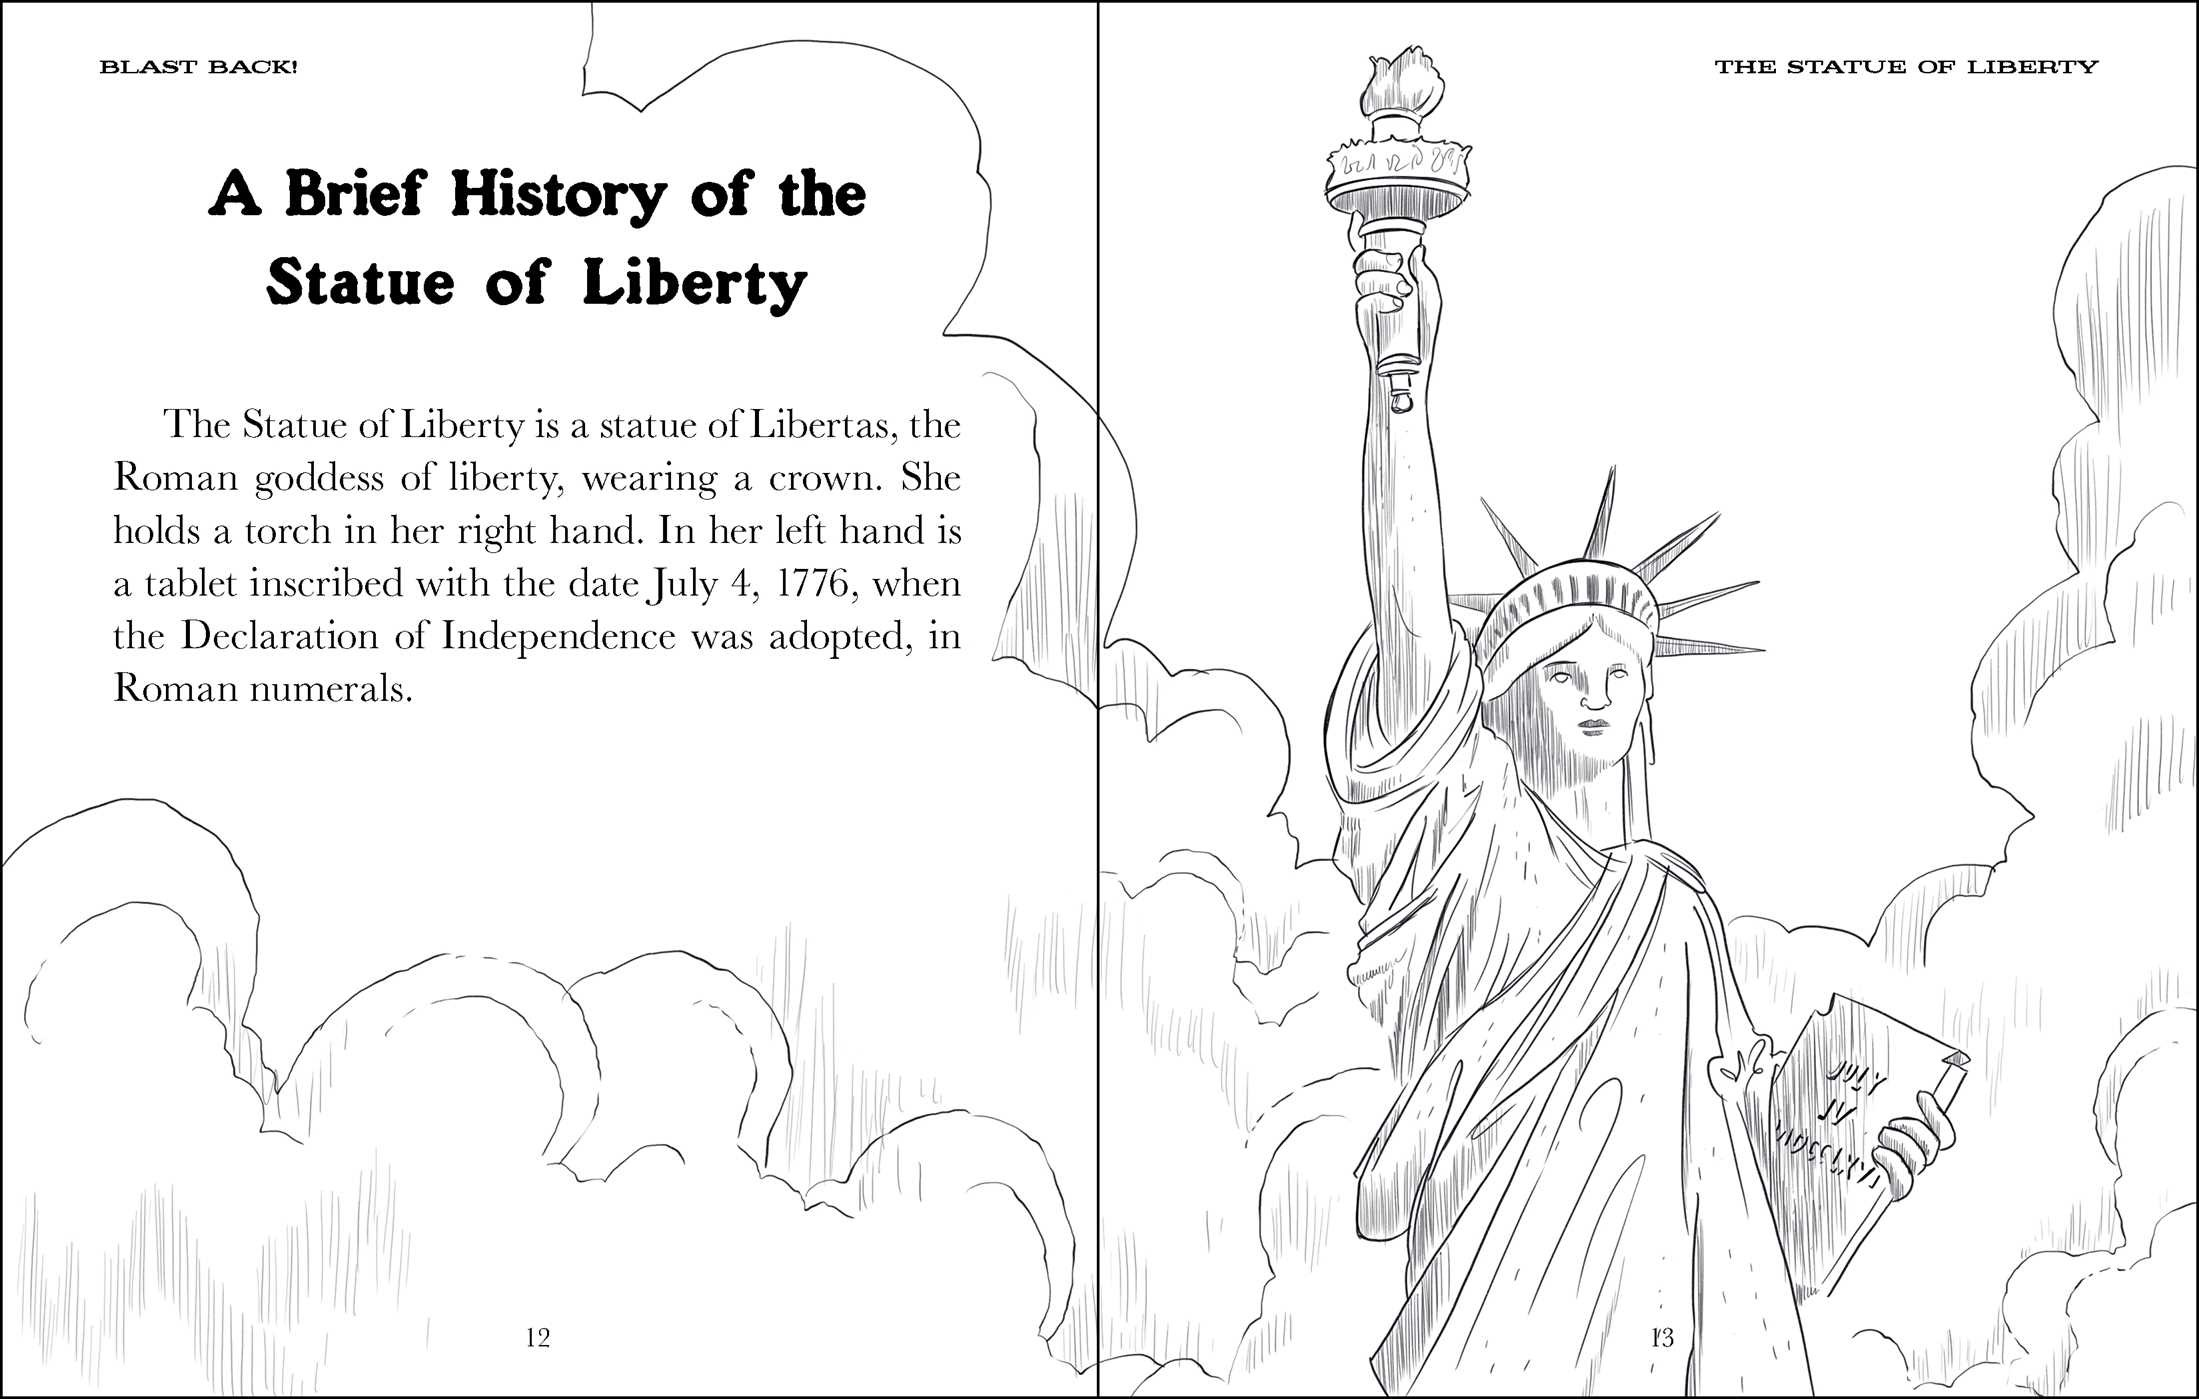 The statue of liberty 9781499804560.in02